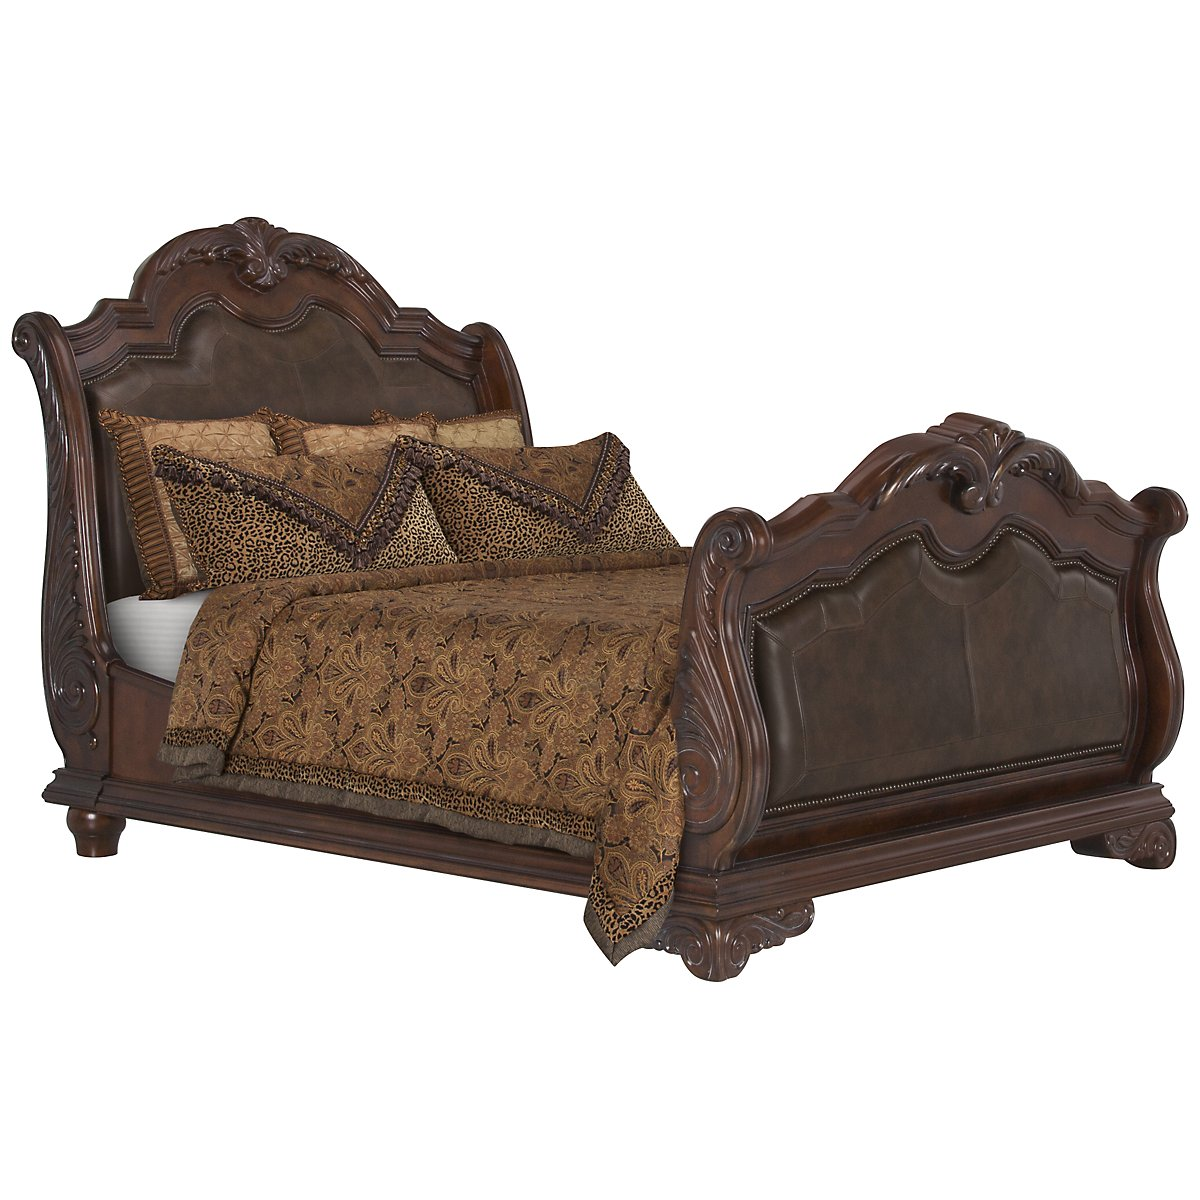 City Furniture Regal Dark Tone Leather Sleigh Bed